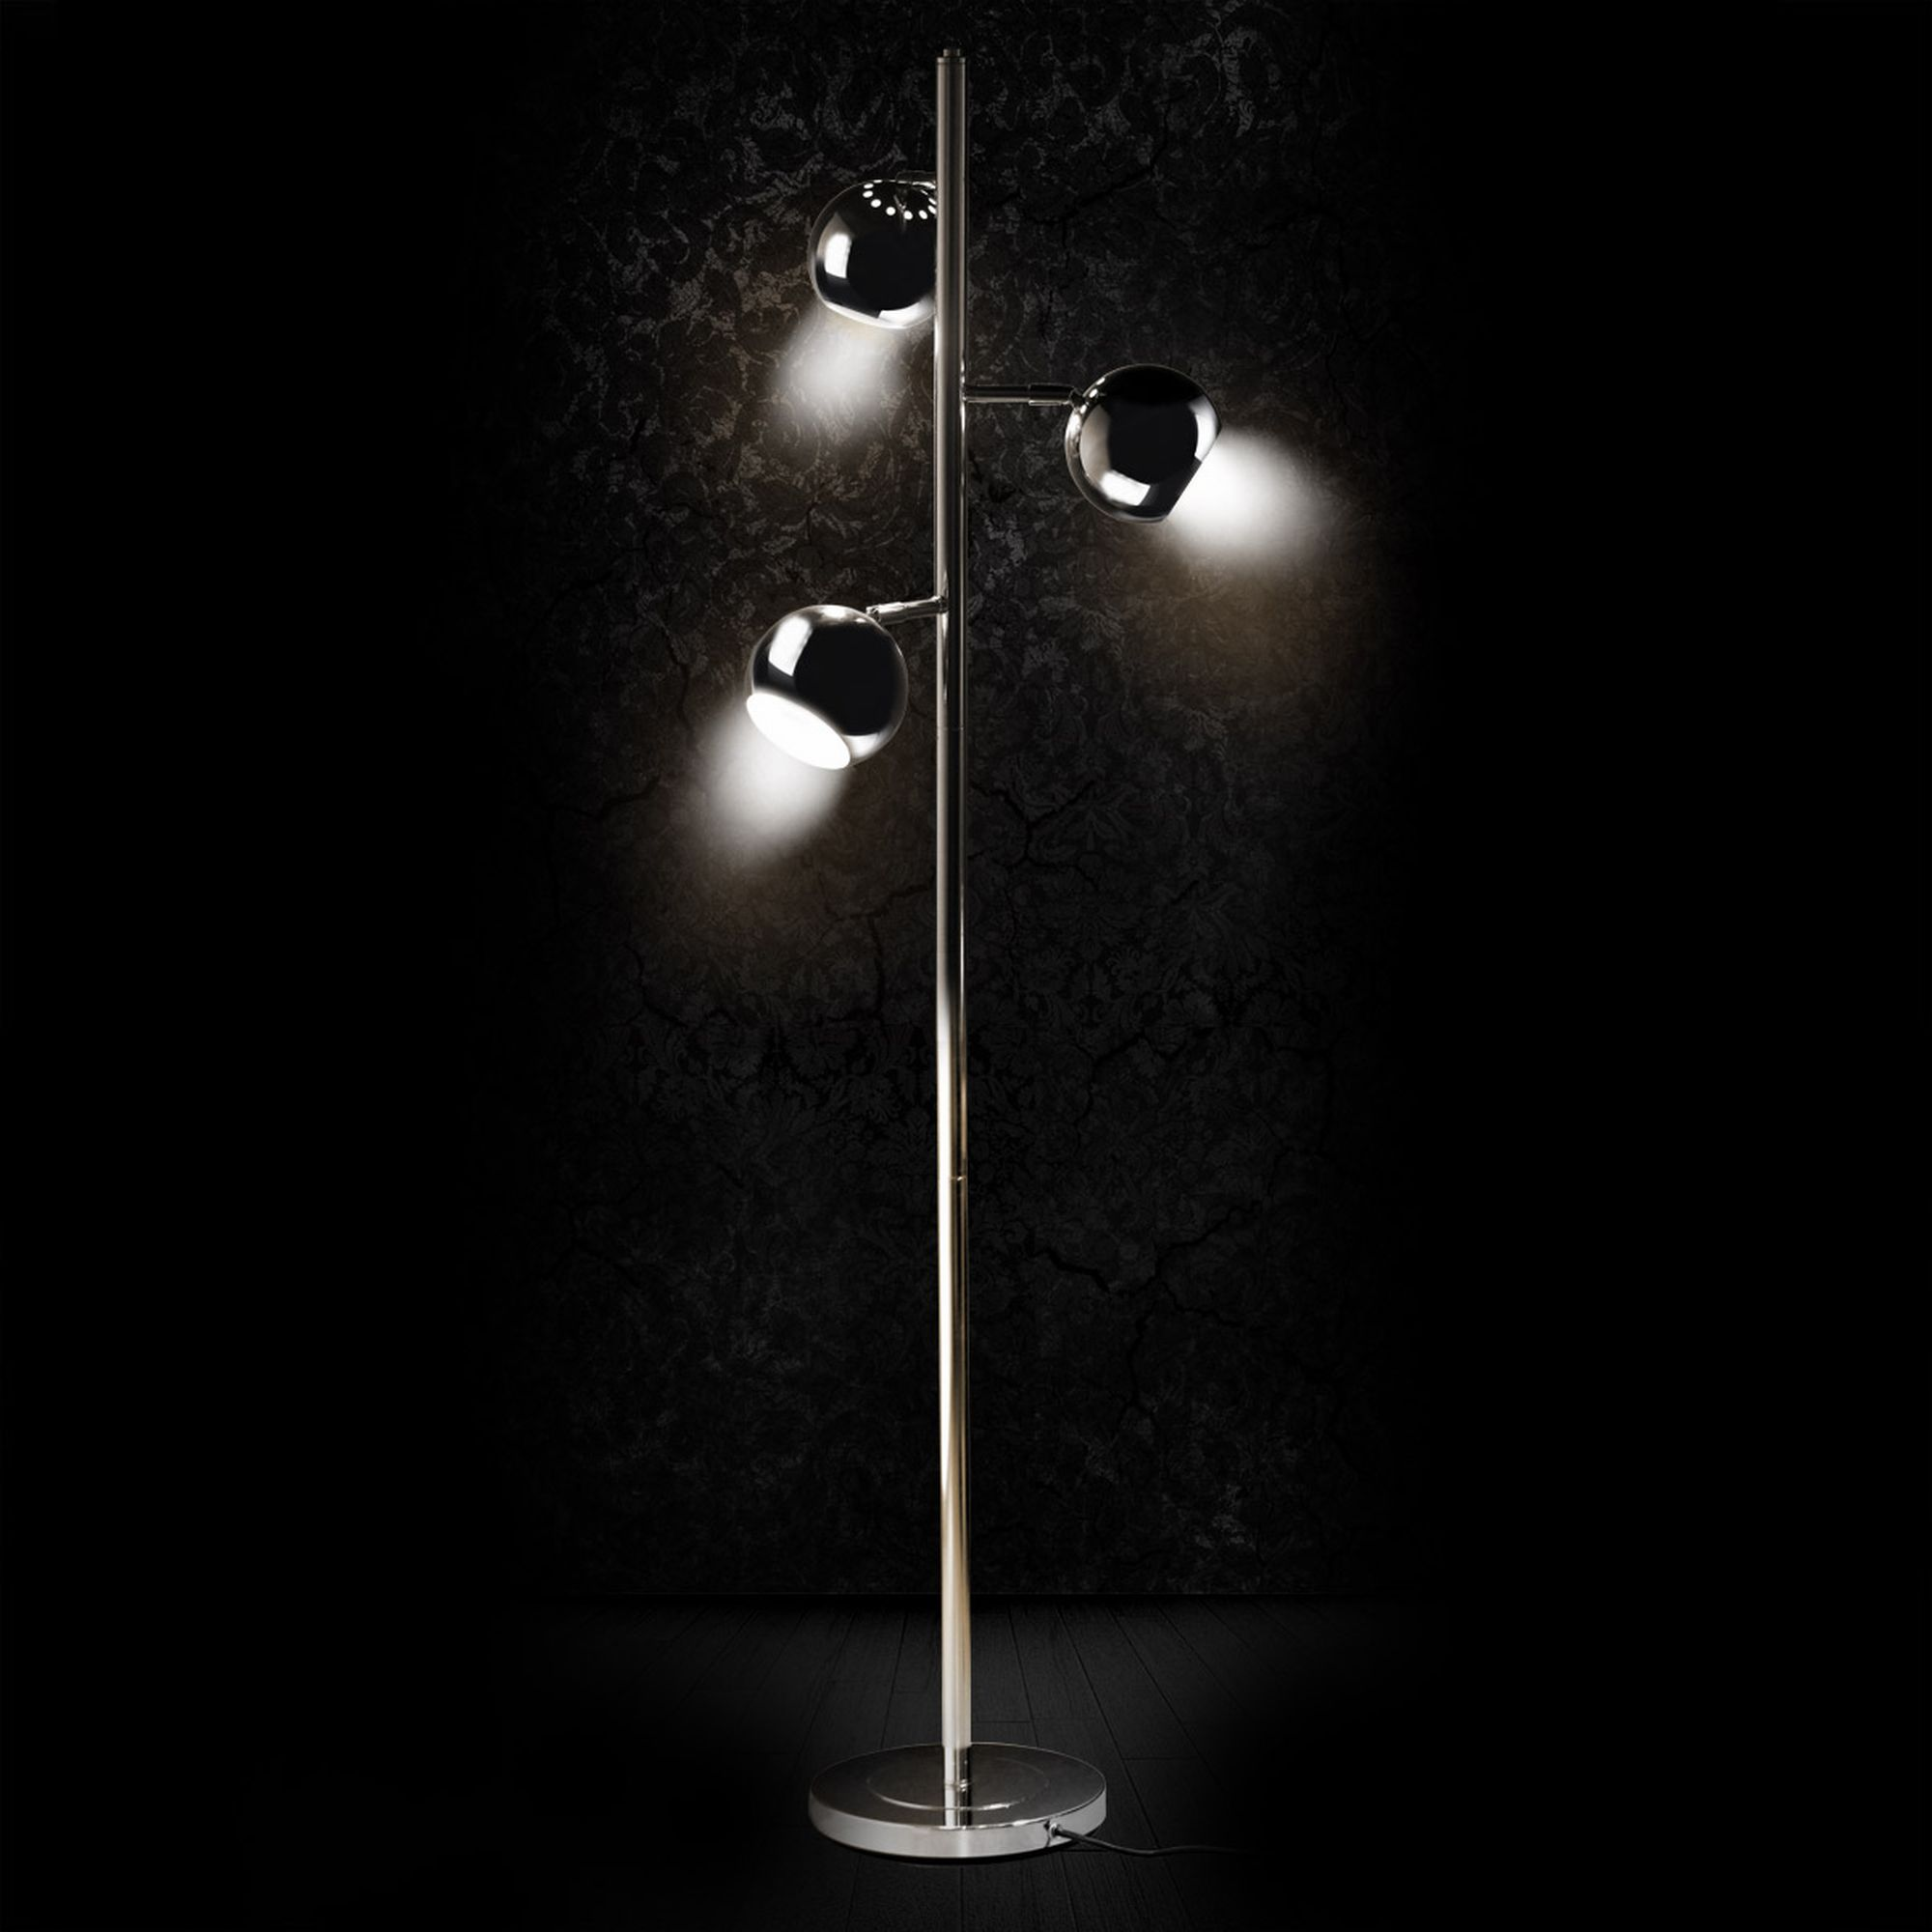 floor lamp standing light led lamps 9 watt design lux